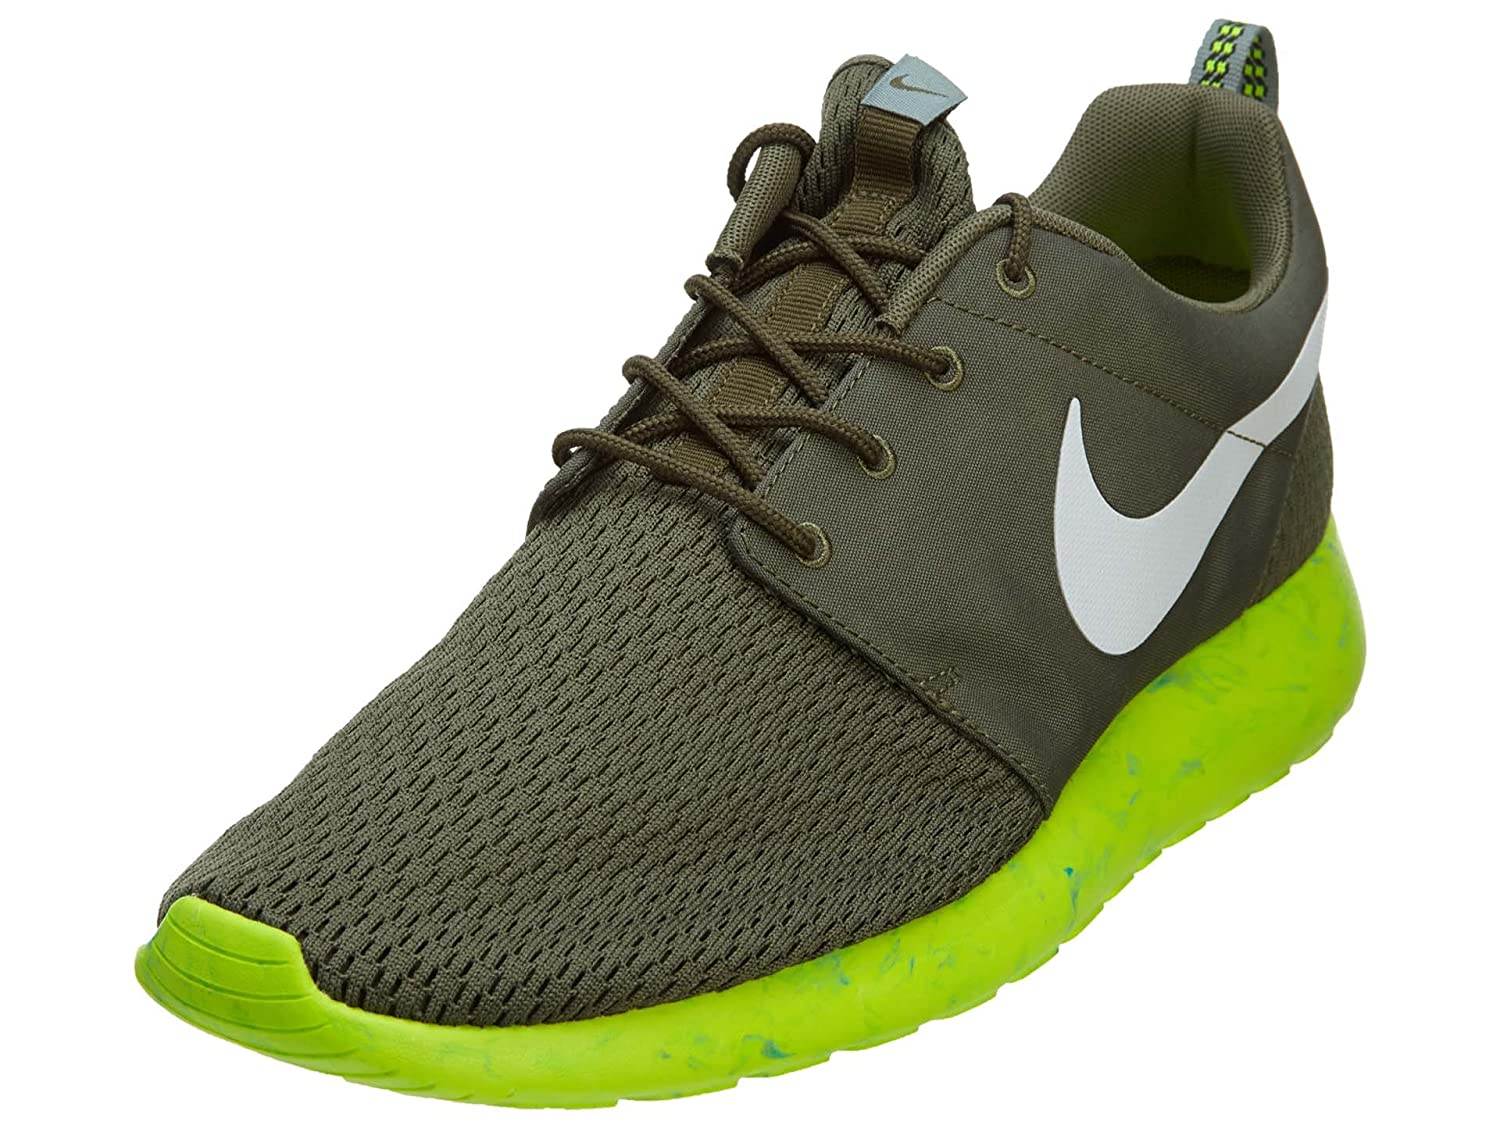 Nike Zoom Structure 17 Shield Mens Running Trainers 616304 307 Sneakers Shoes Dark Loden